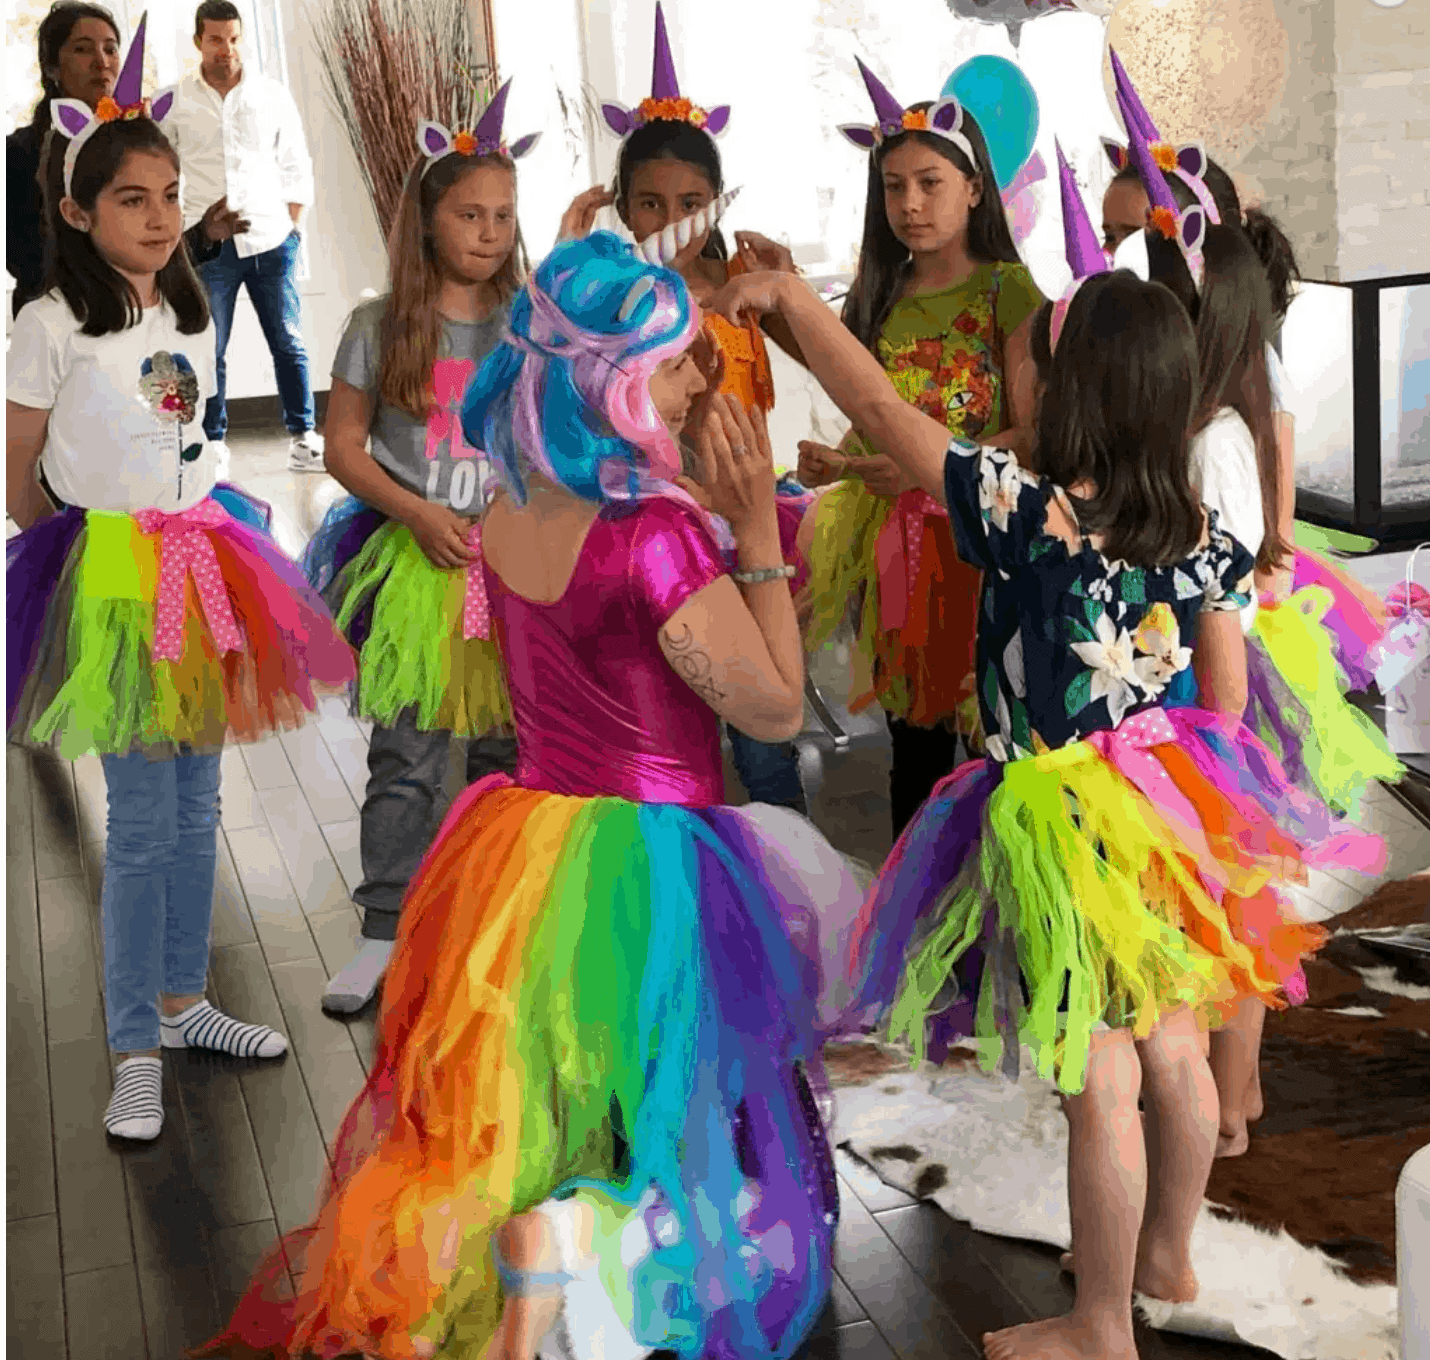 fete-licorne-unicorn-party